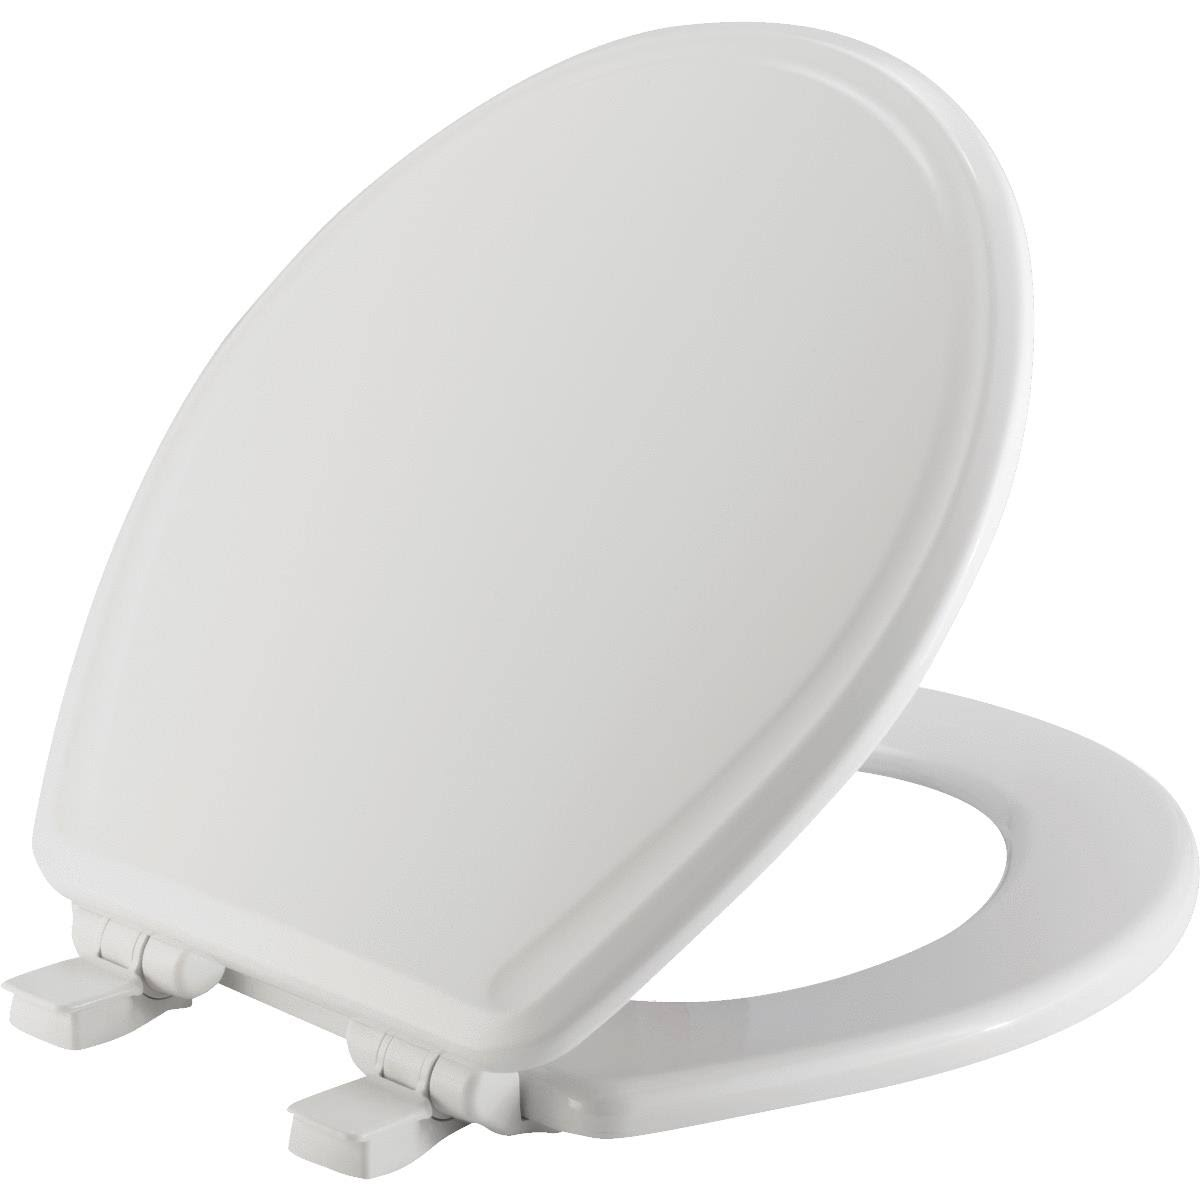 Mayfair 47SLOW-000 Slow Close Round Toilet Seat - White